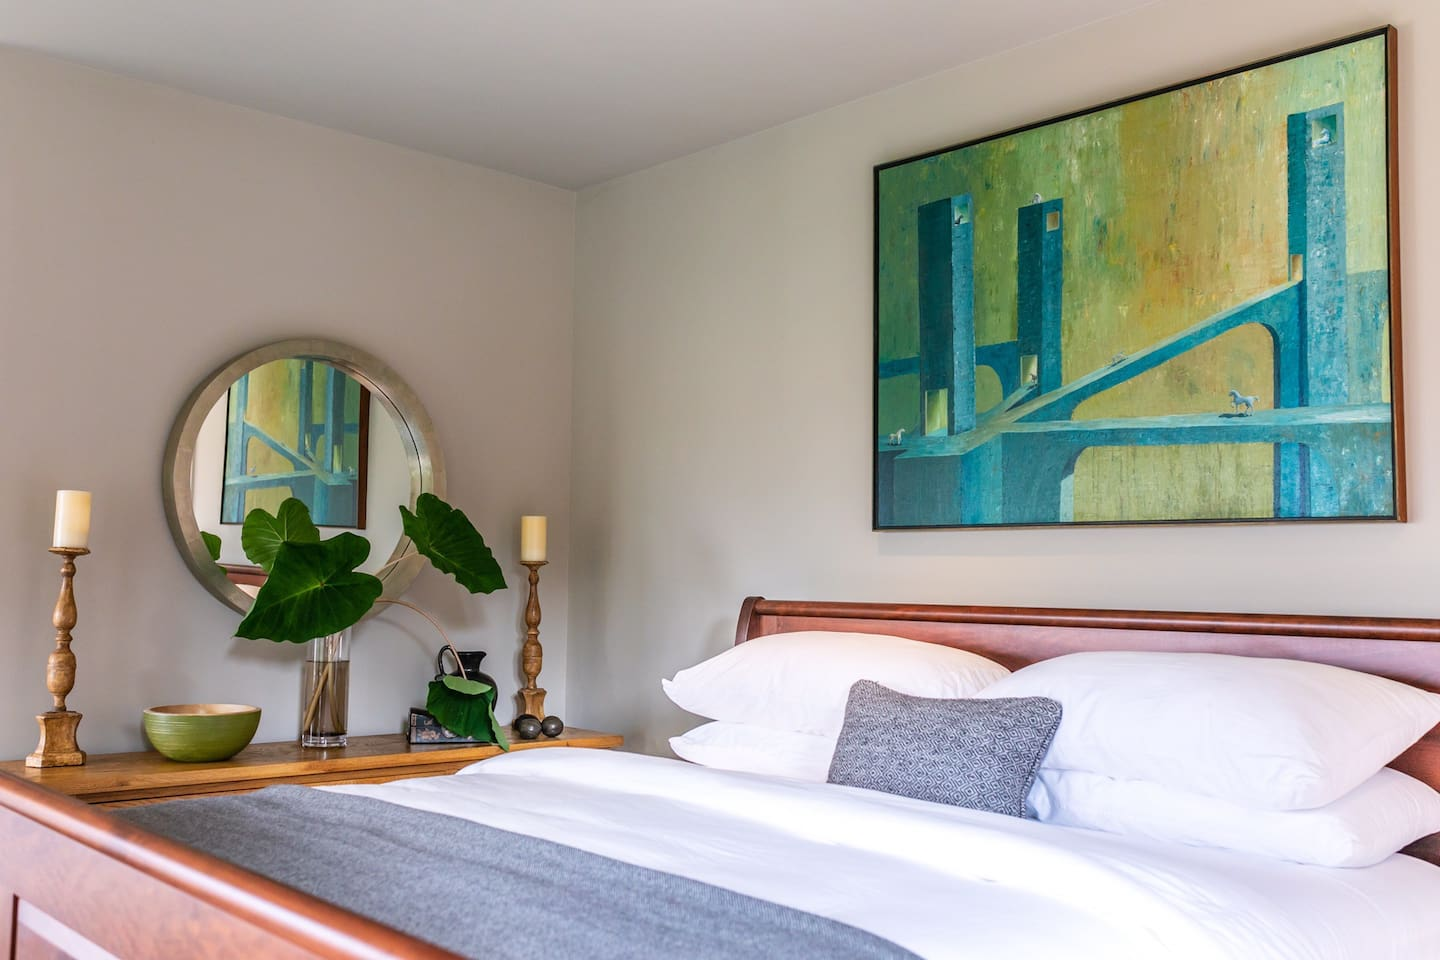 City Views offers a generous guest bedroom with luxury king bed, spa-inspired en-suite bathroom, flat-screen smart TV, and wonderful city and courtyard views.